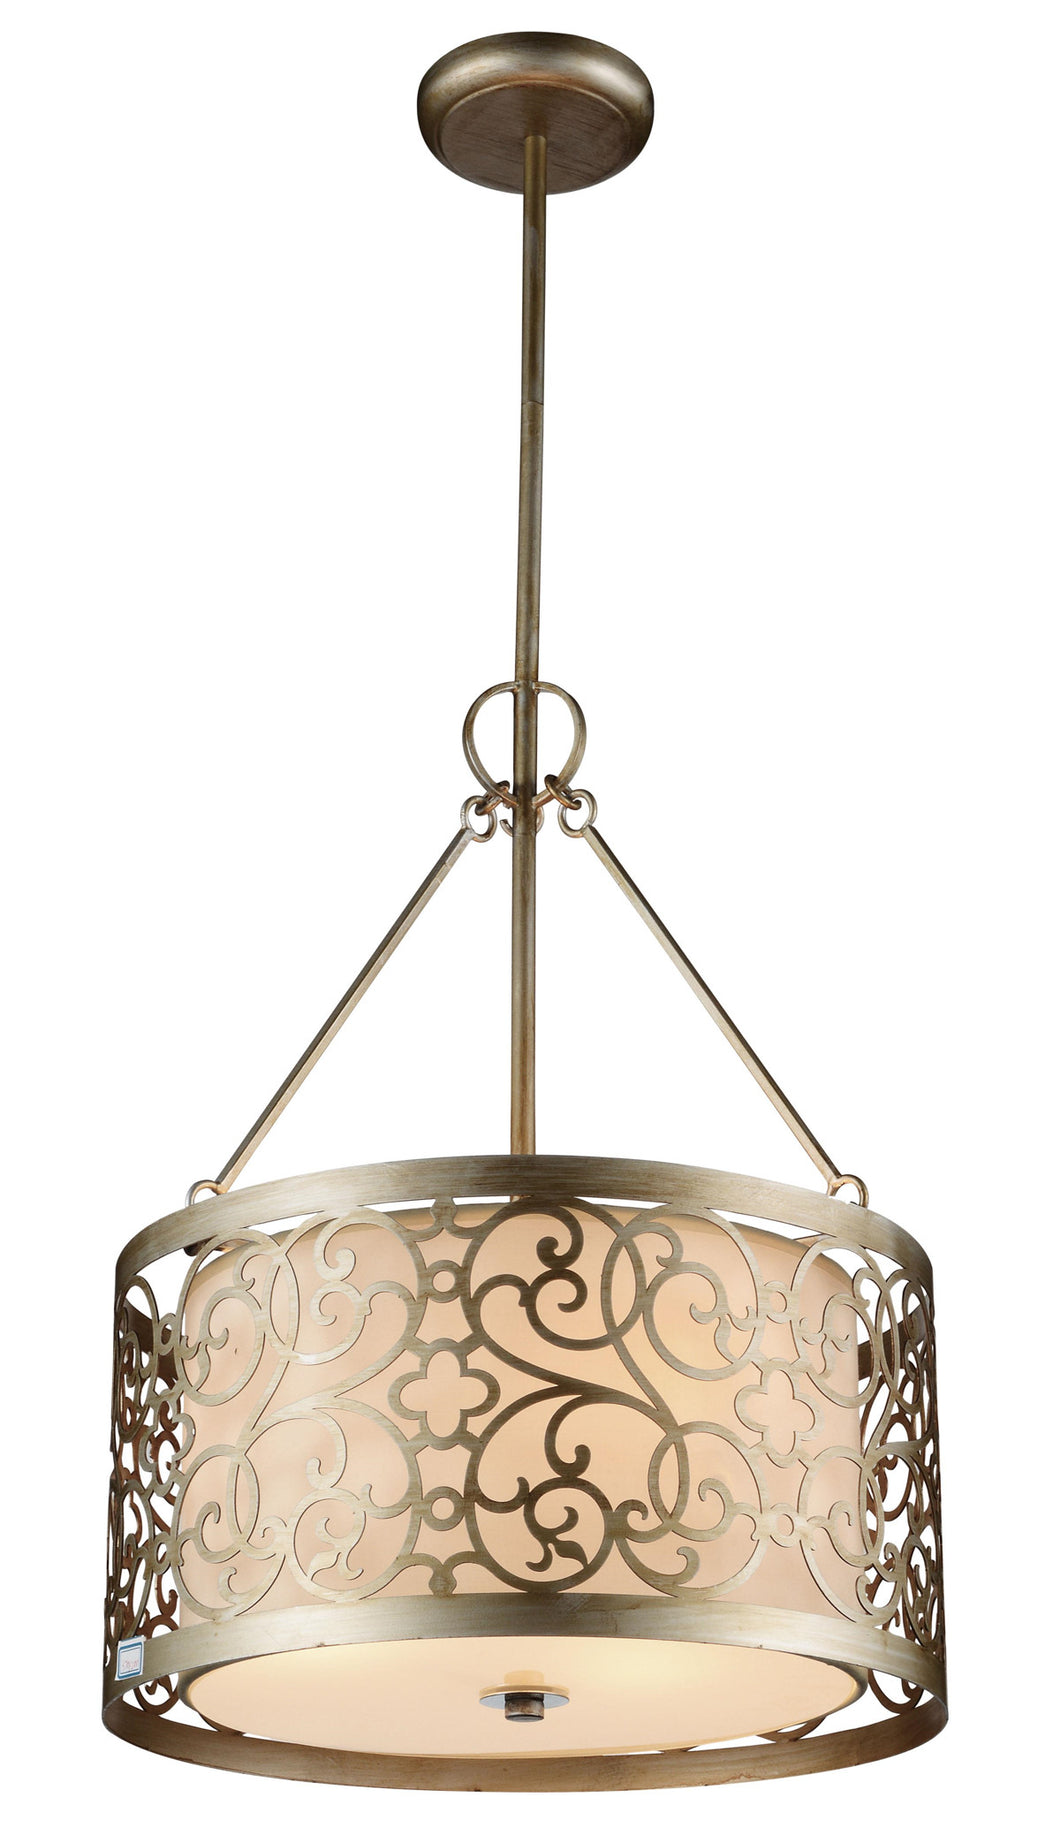 3 Light Drum Shade Chandelier with Rubbed Silver finish